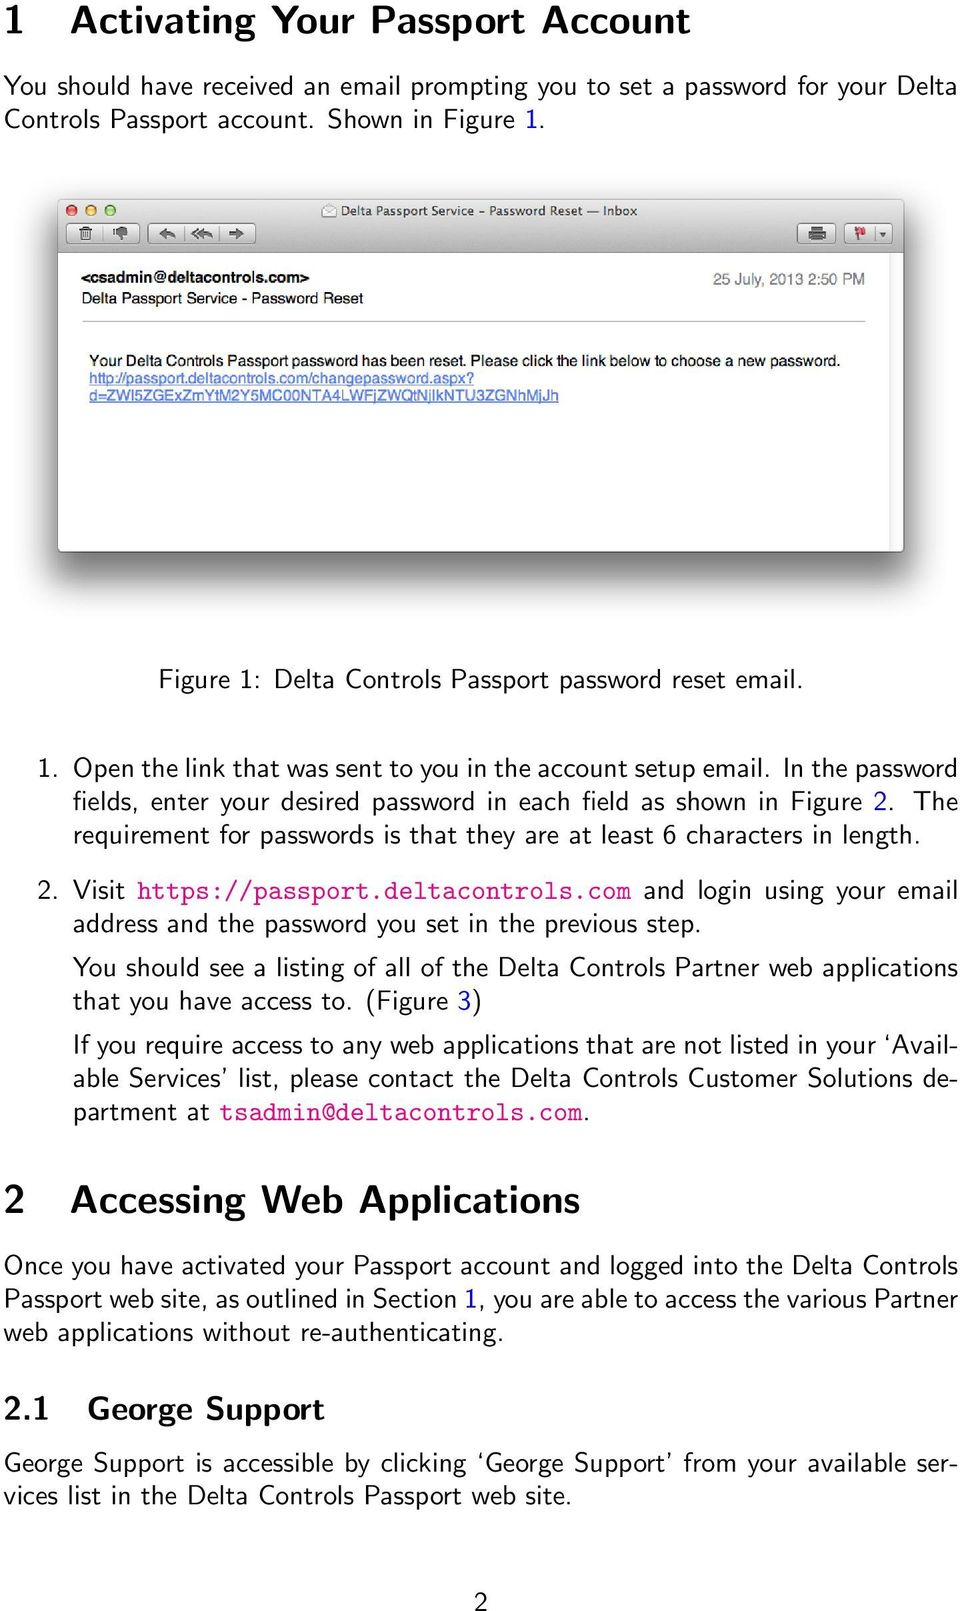 In the password fields, enter your desired password in each field as shown in Figure 2. The requirement for passwords is that they are at least 6 characters in length. 2. Visit https://passport.